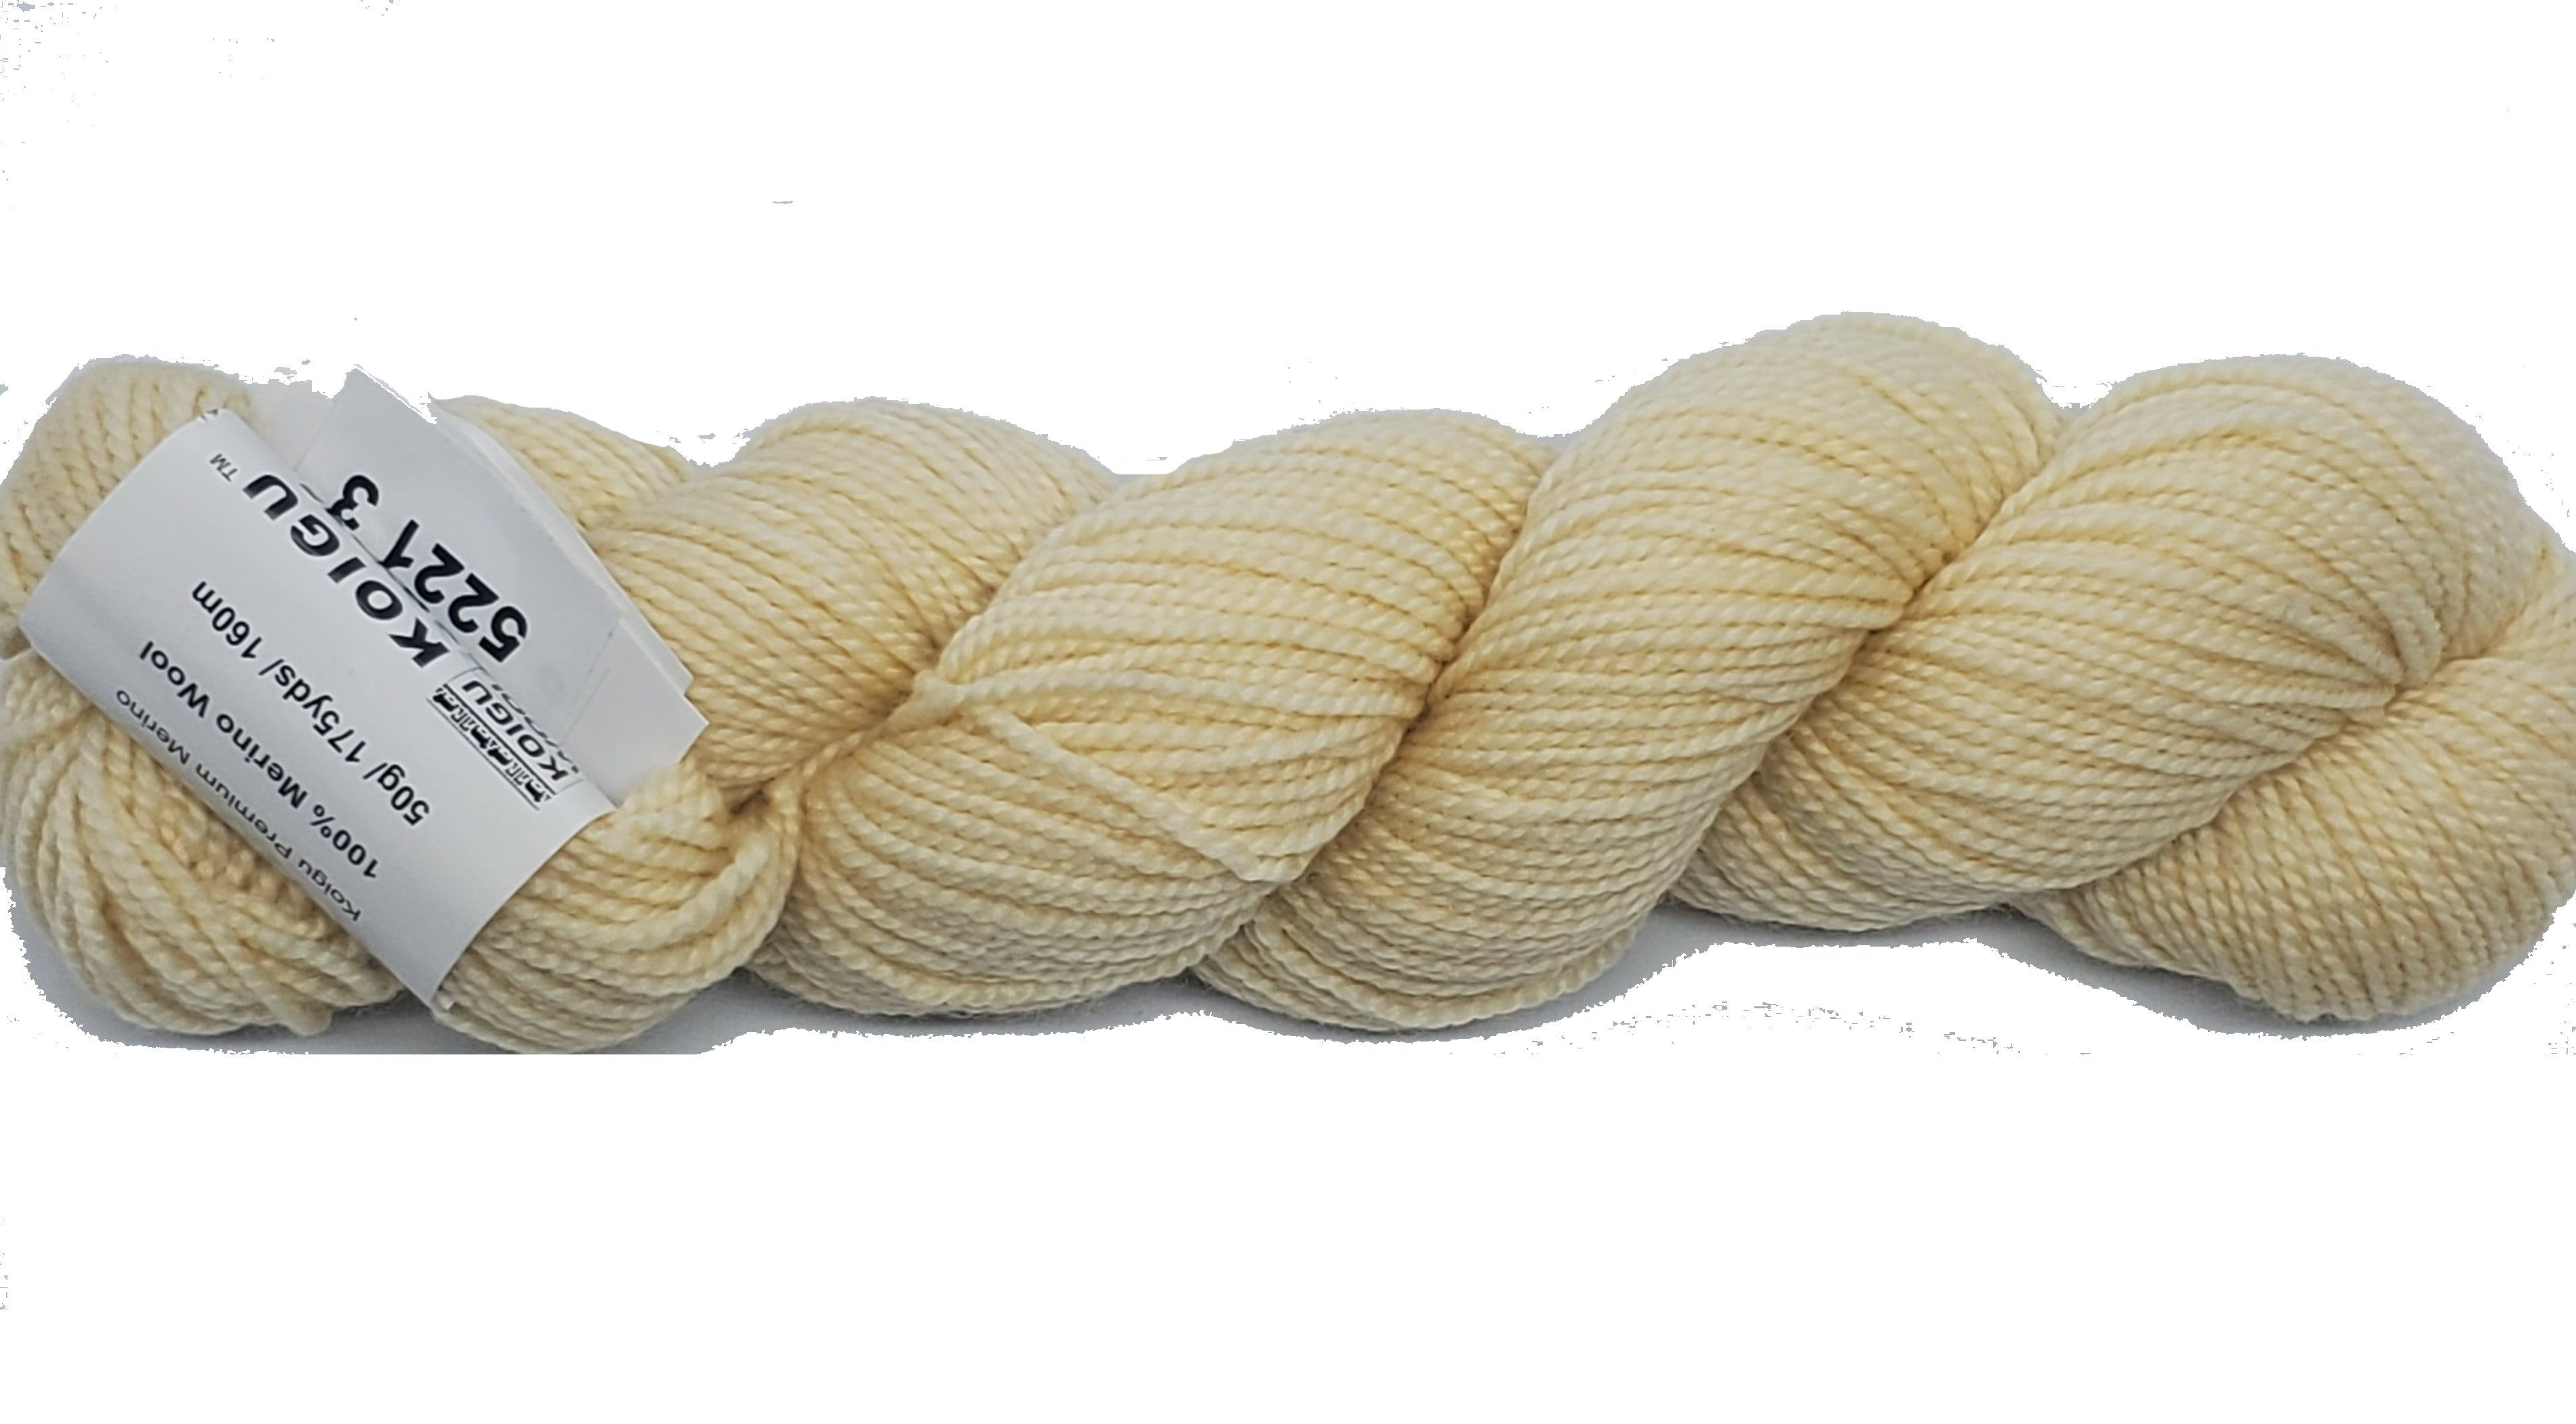 100% Merino Wool Fingering Weight Hand Dyed 50 g, 170 yards Hand Wash Cold, Lay flat to dry